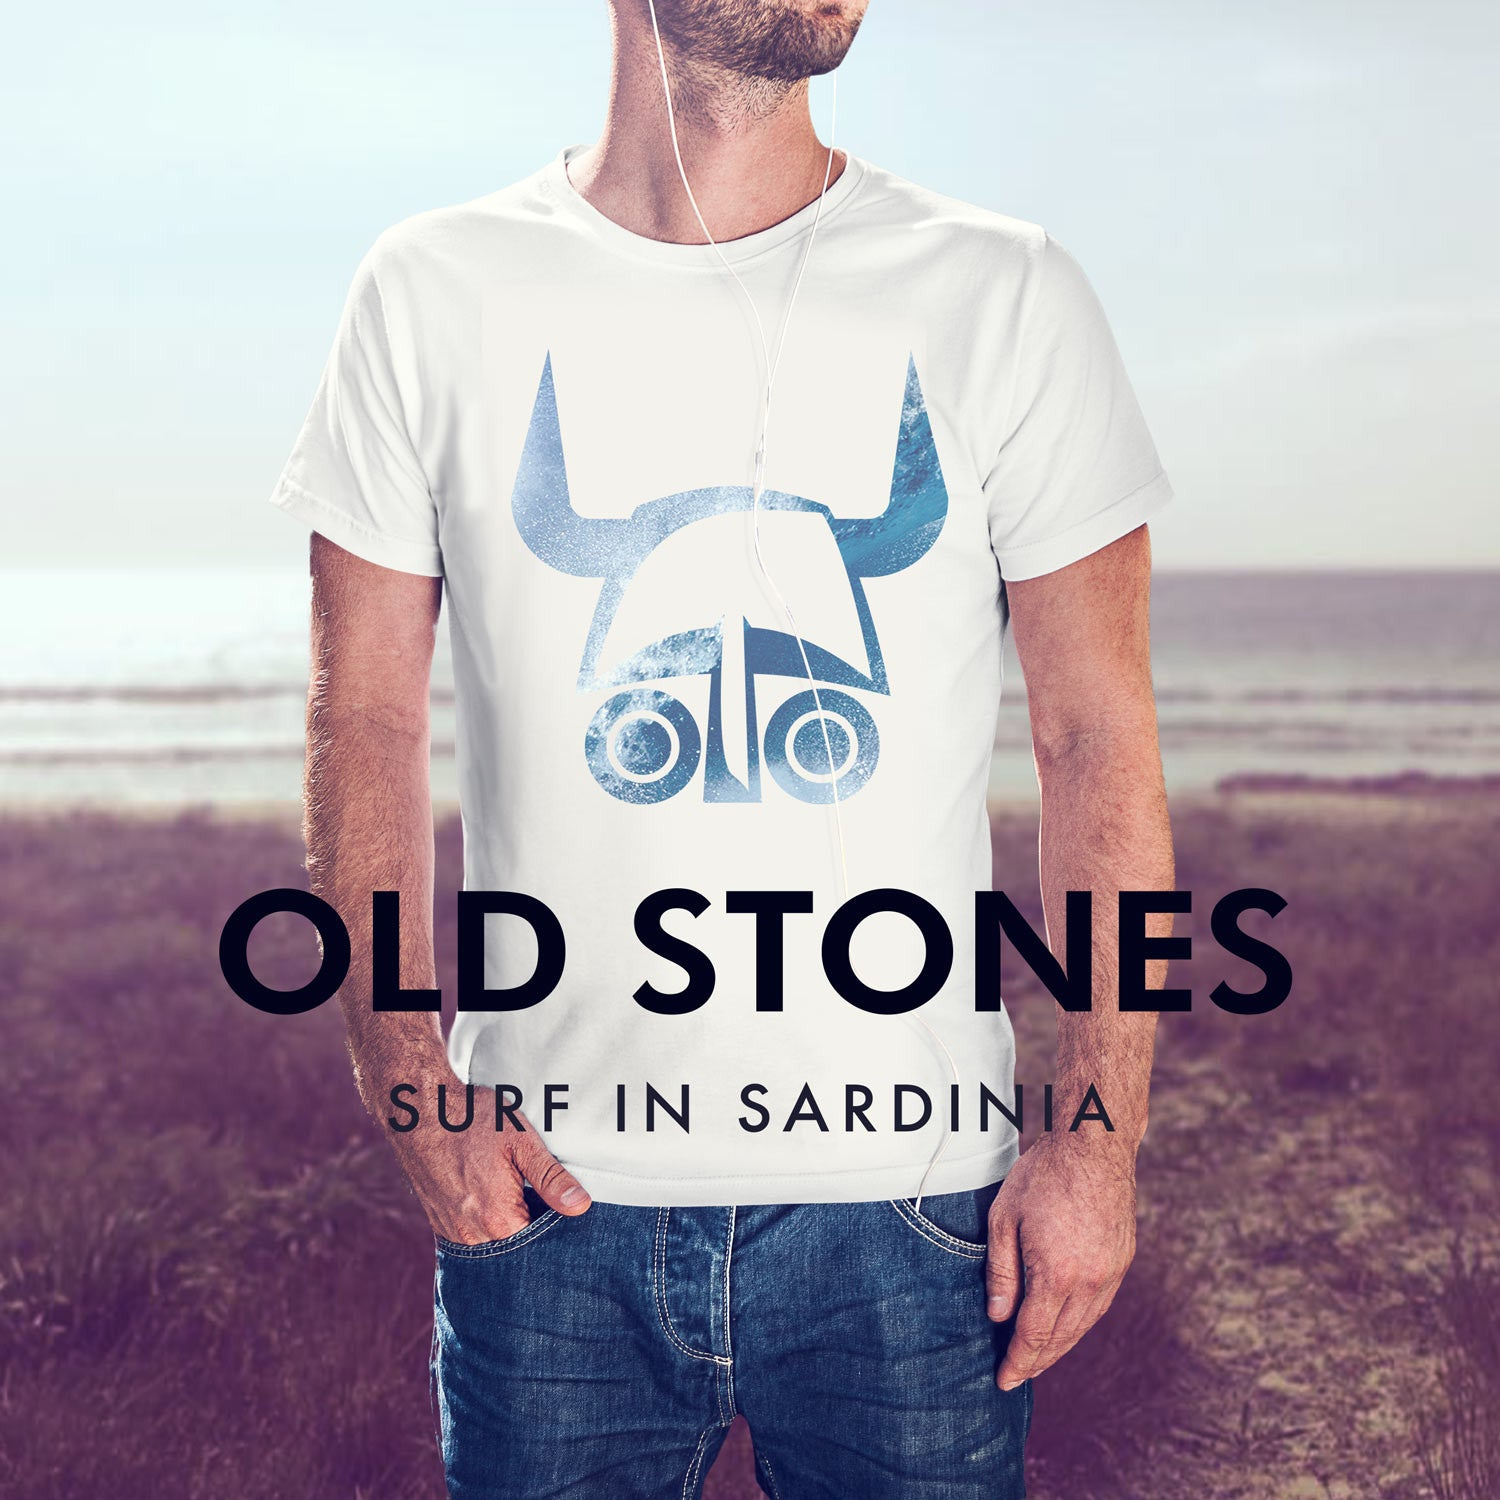 Old Stones, T-shirt made in sardinia